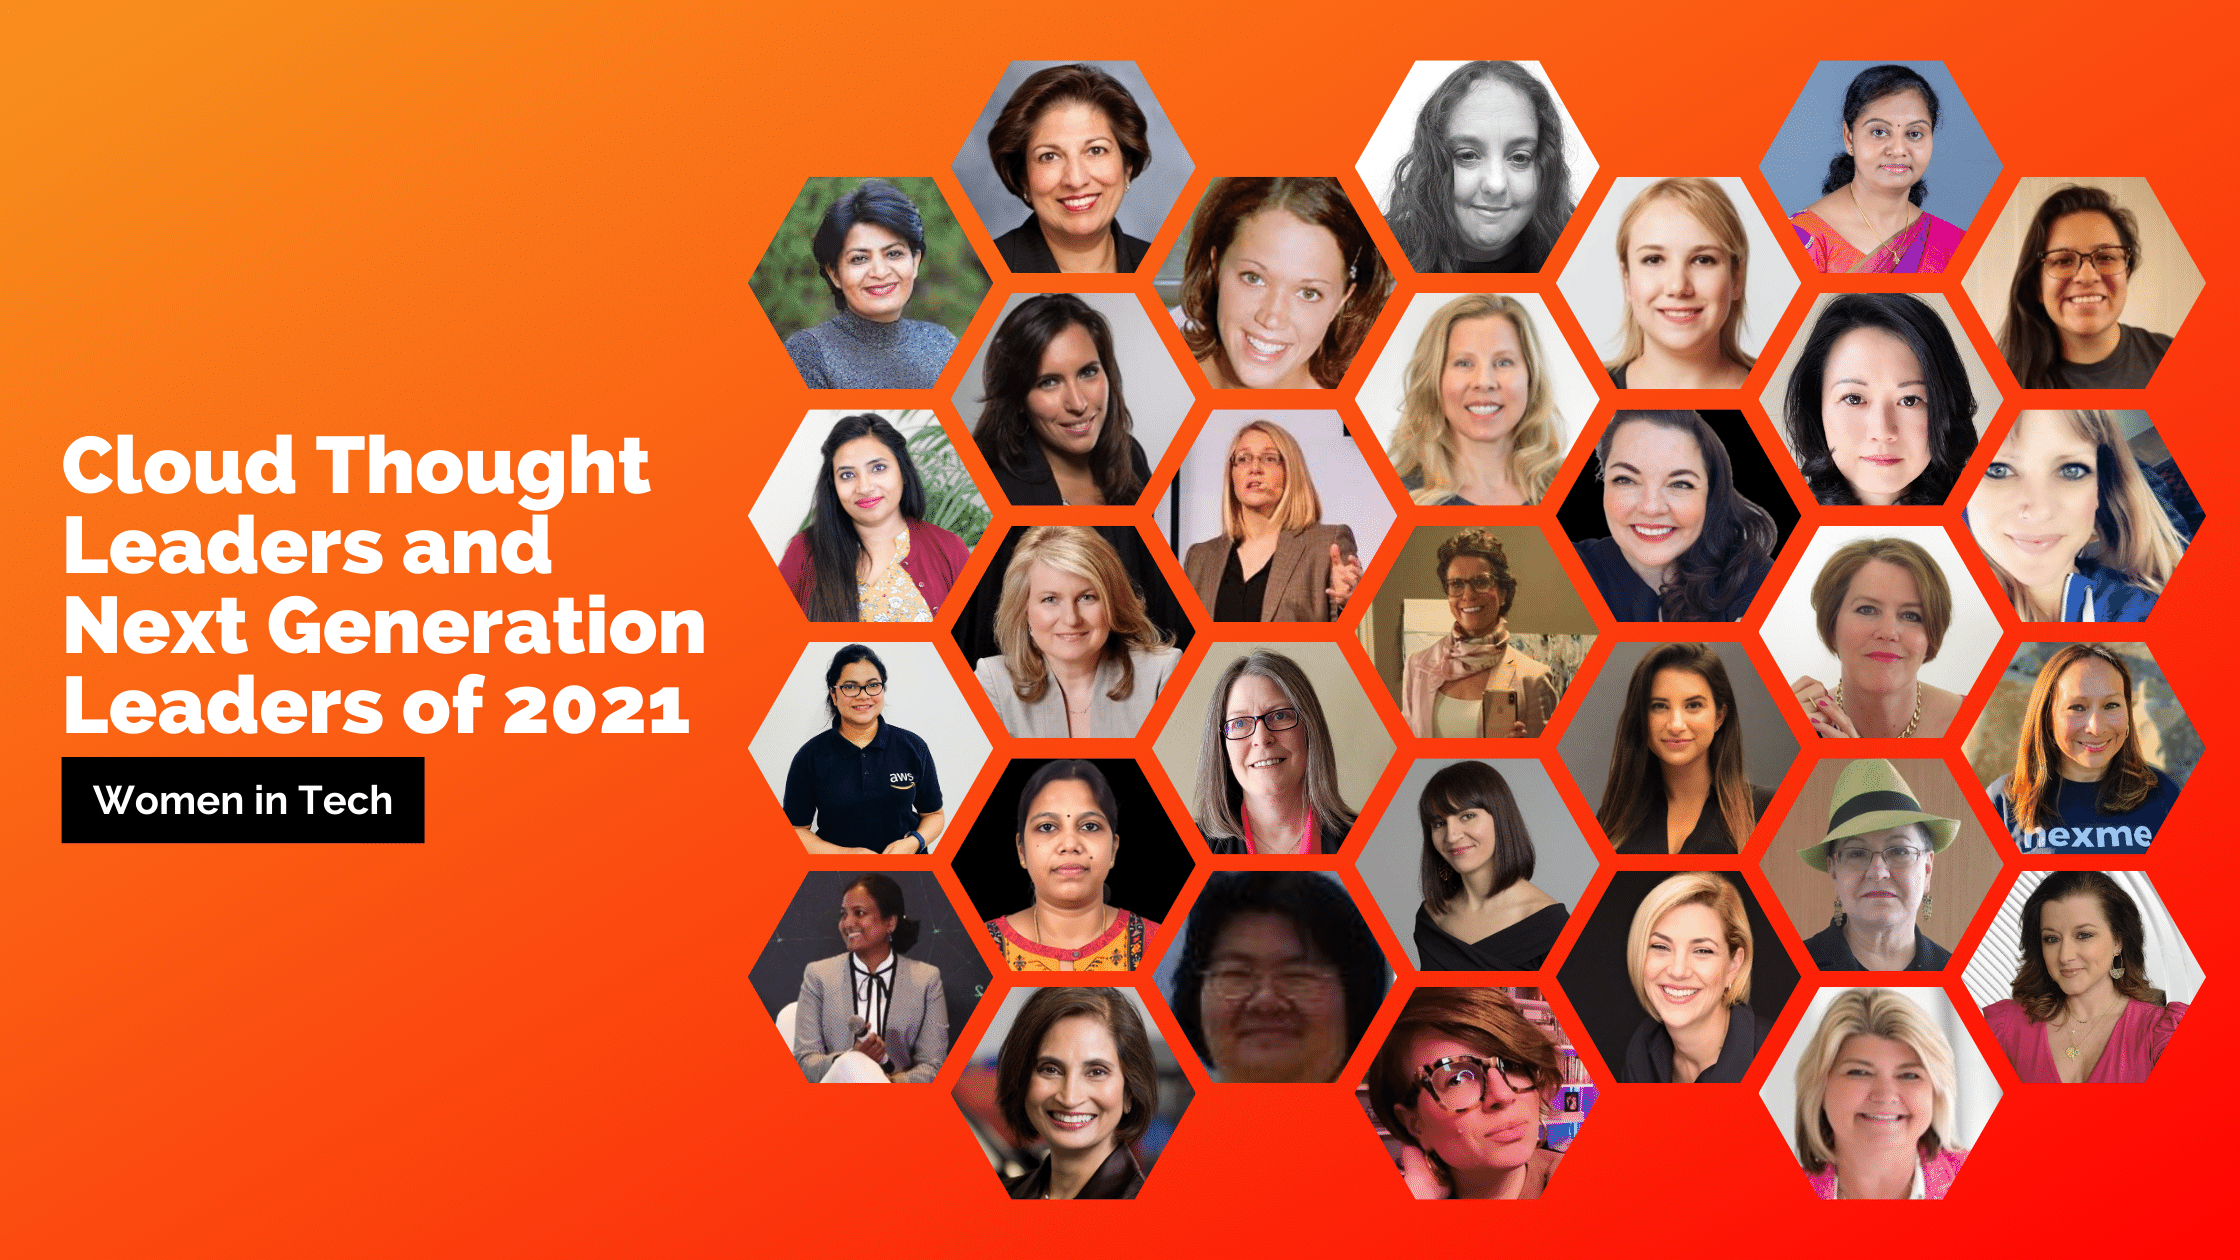 Women Thought Leaders of 2021